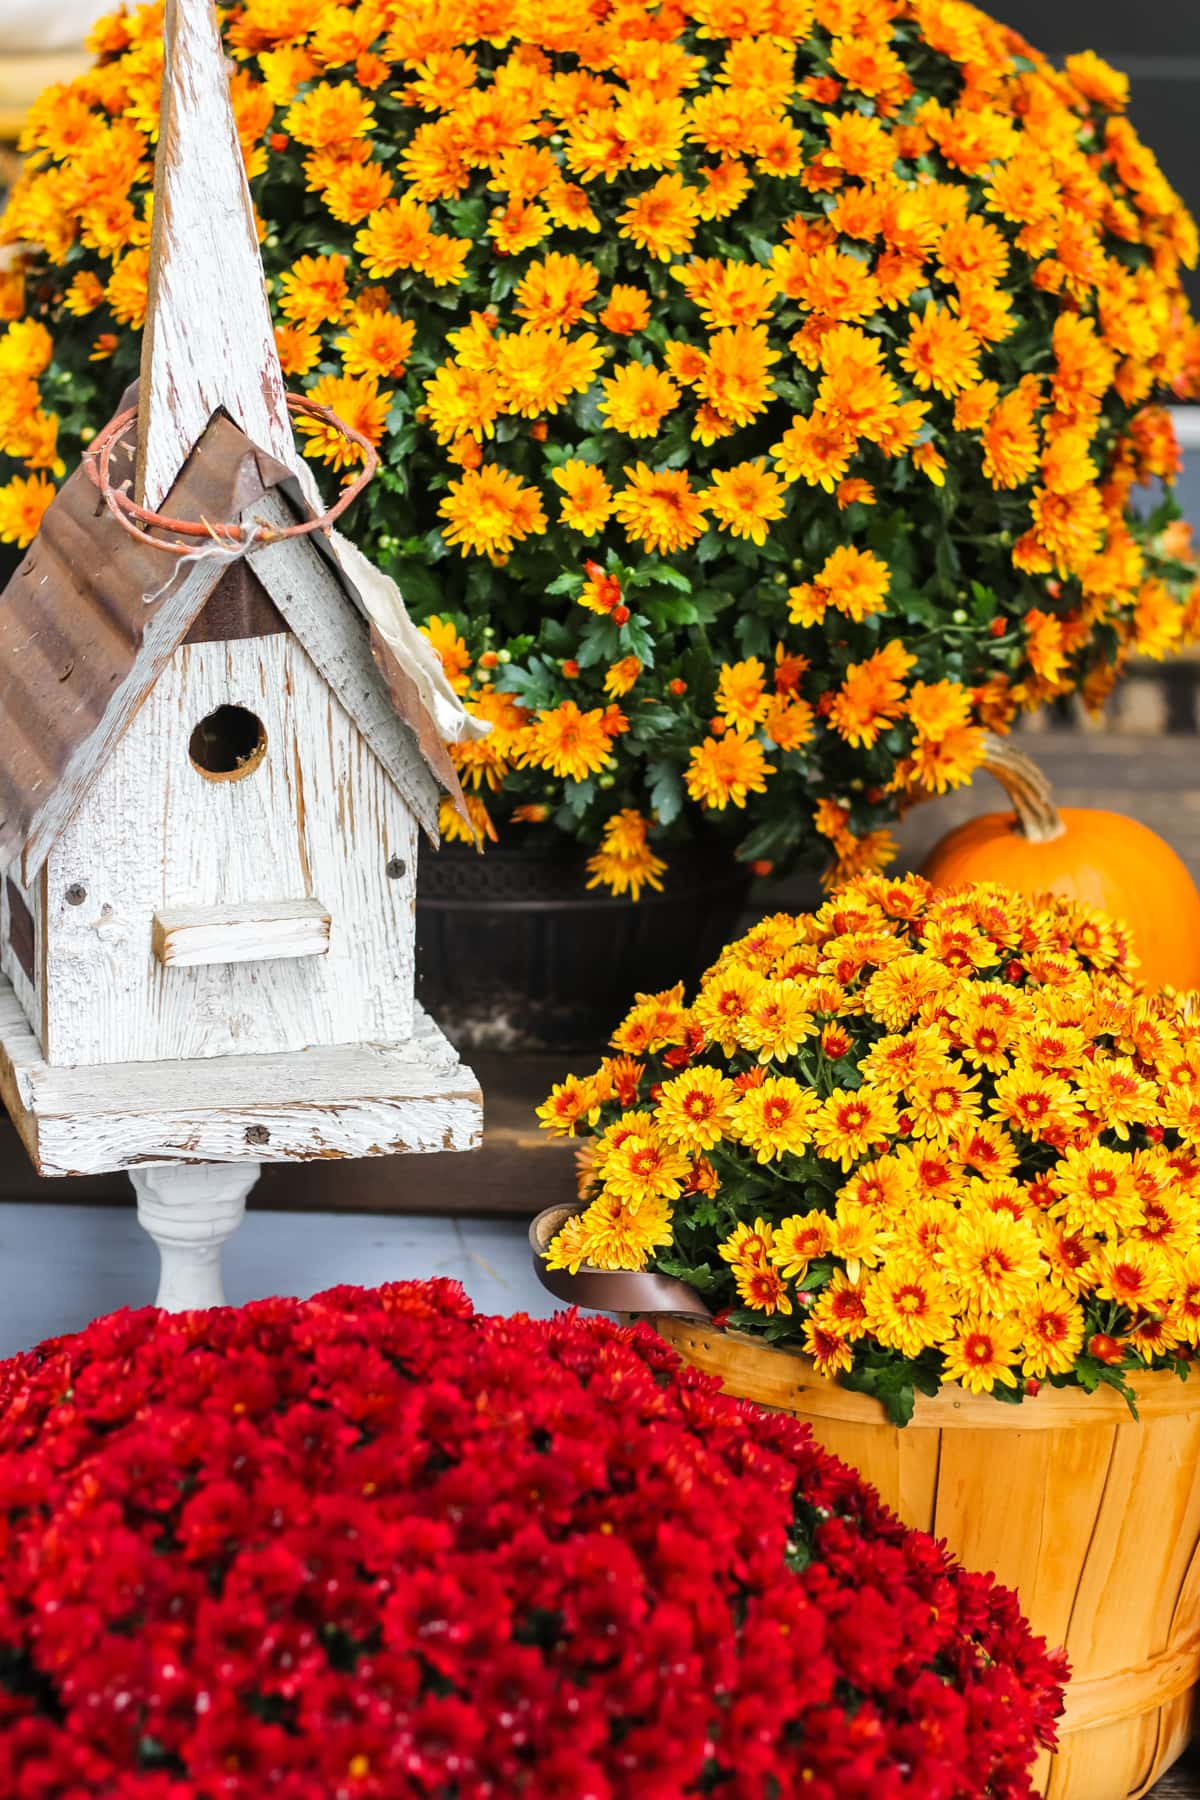 a close up of orange and red chrysanthemums, mini pumpkins and a white birdhouse